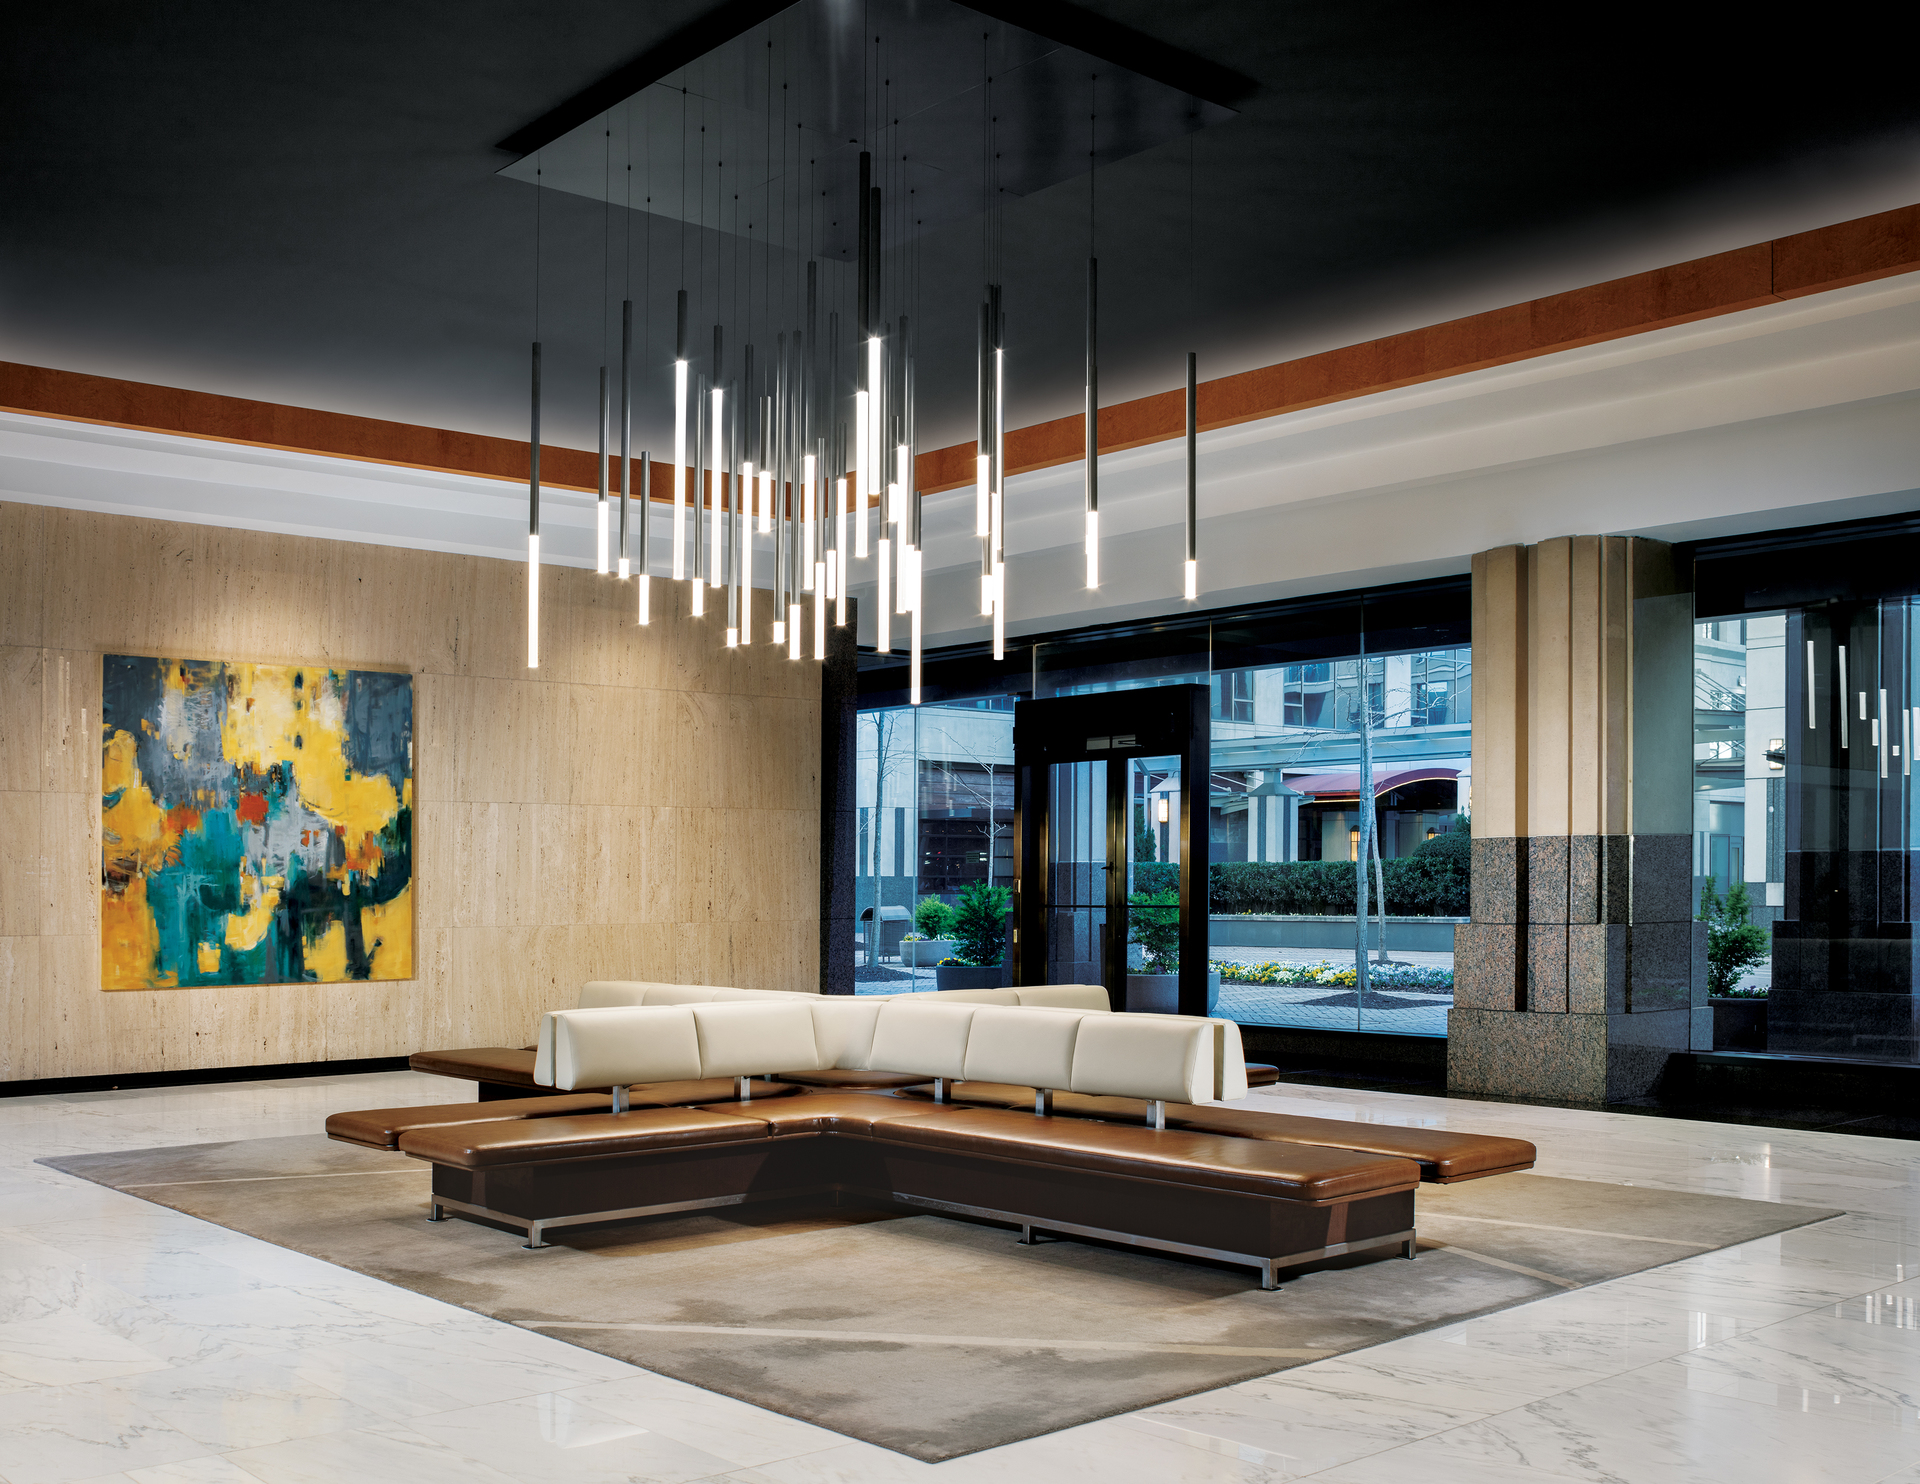 """Here's a fantastic look at our GlowStick™ Cluster at One Buckhead Plaza in Atlanta - often referred to as """"The Cathedral Building"""" with its Gothic cathedral motif, central """"vault"""" and ornamental buttresses reminiscent of flying buttresses."""